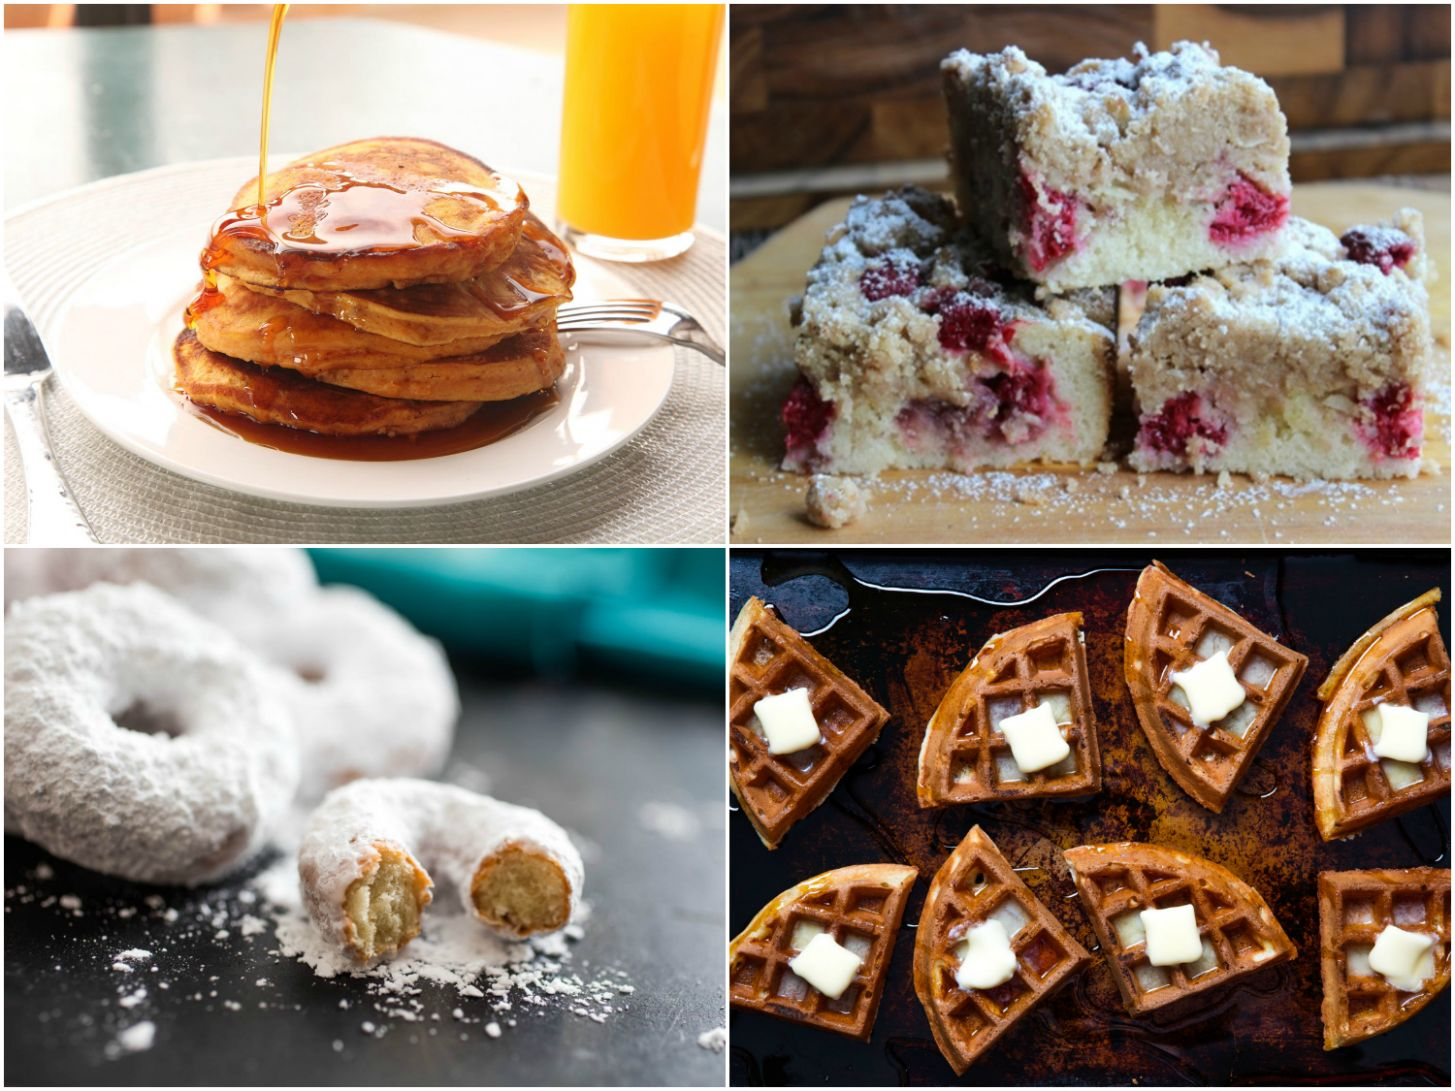 10 Pancakes, Waffles, Muffins, and More Sweet Breakfast Recipes ..